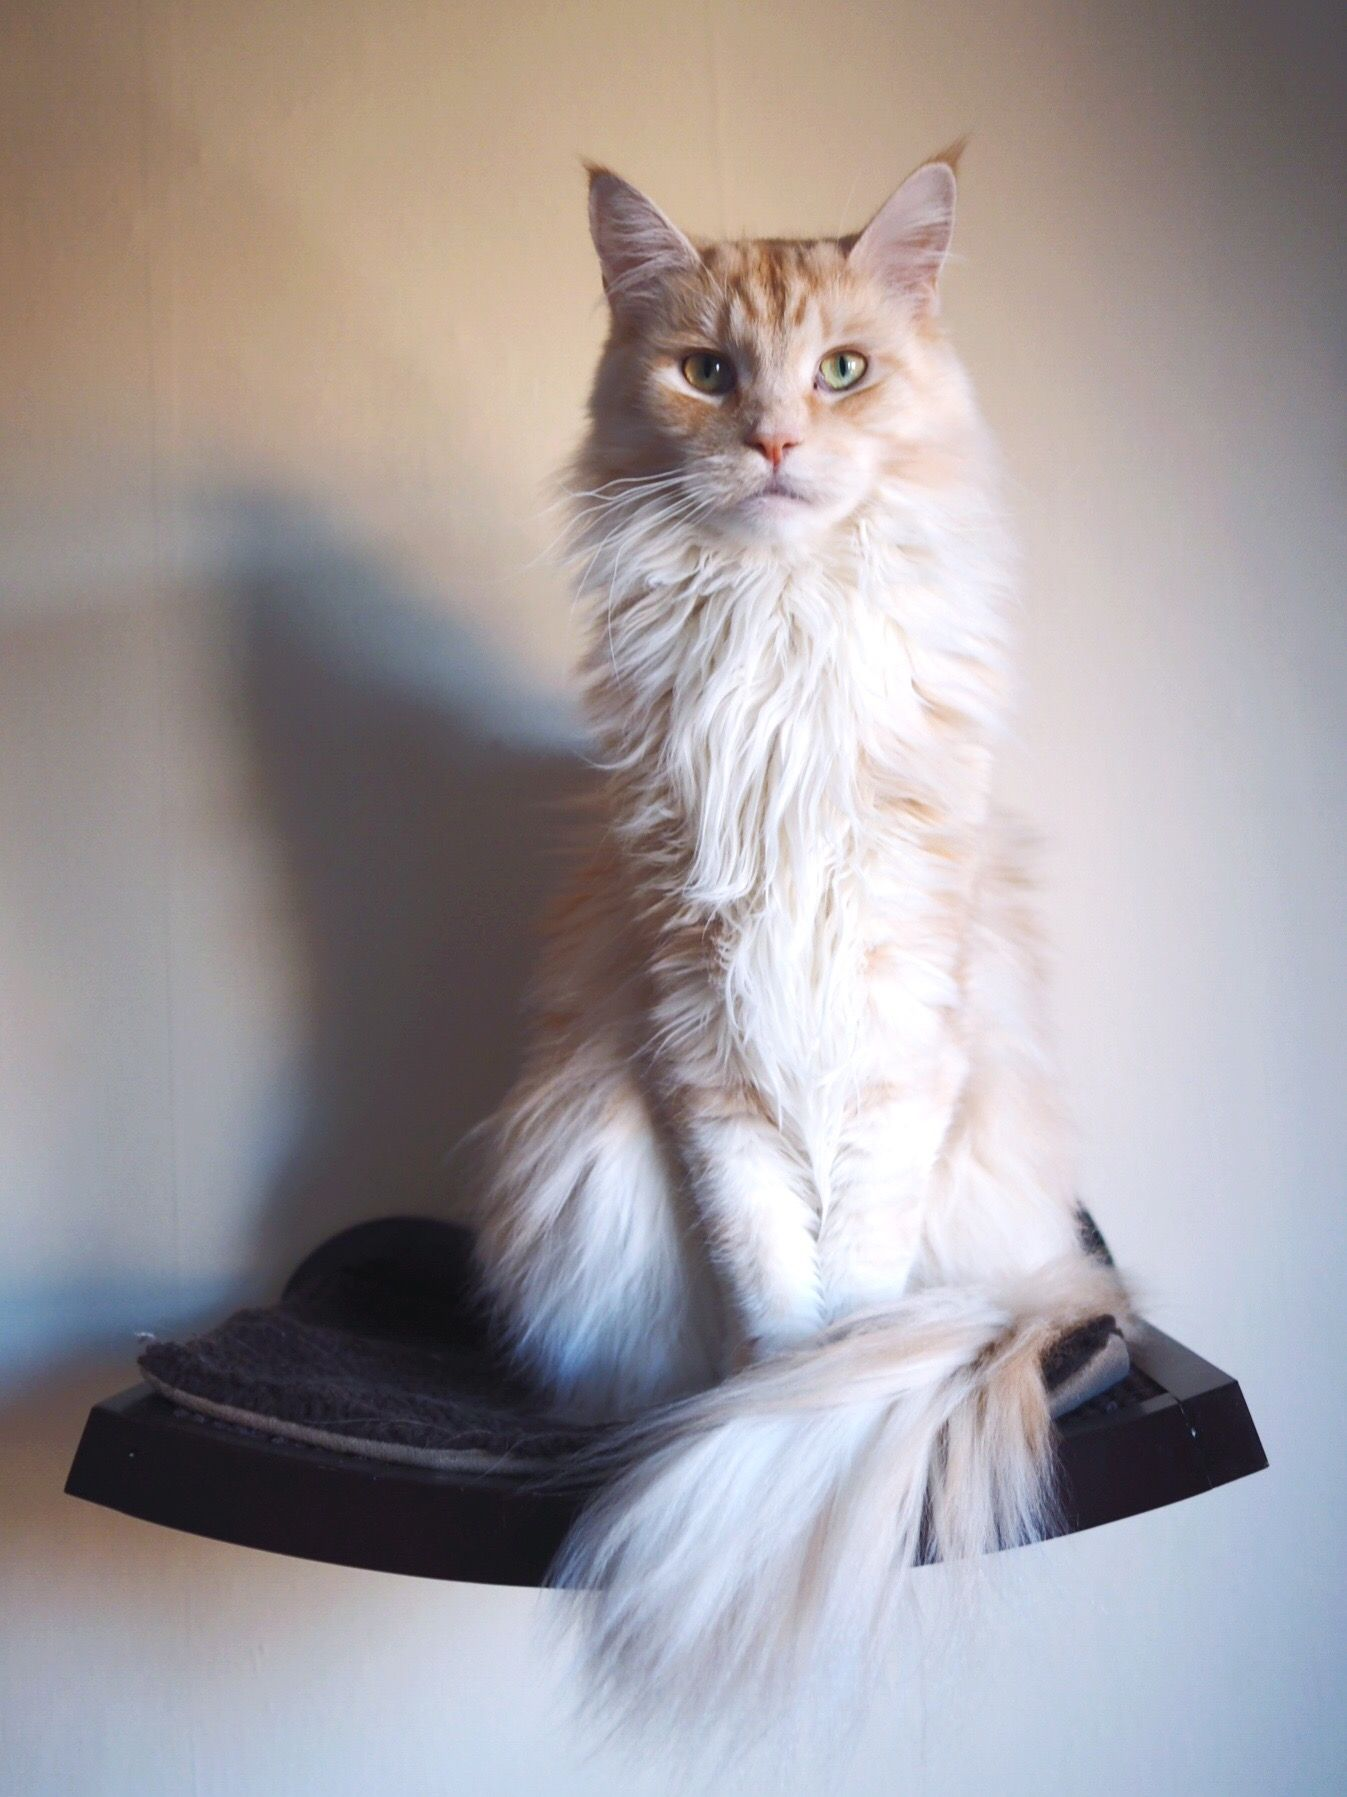 Bramble posing in the cat shelf cats funny pictures Cat